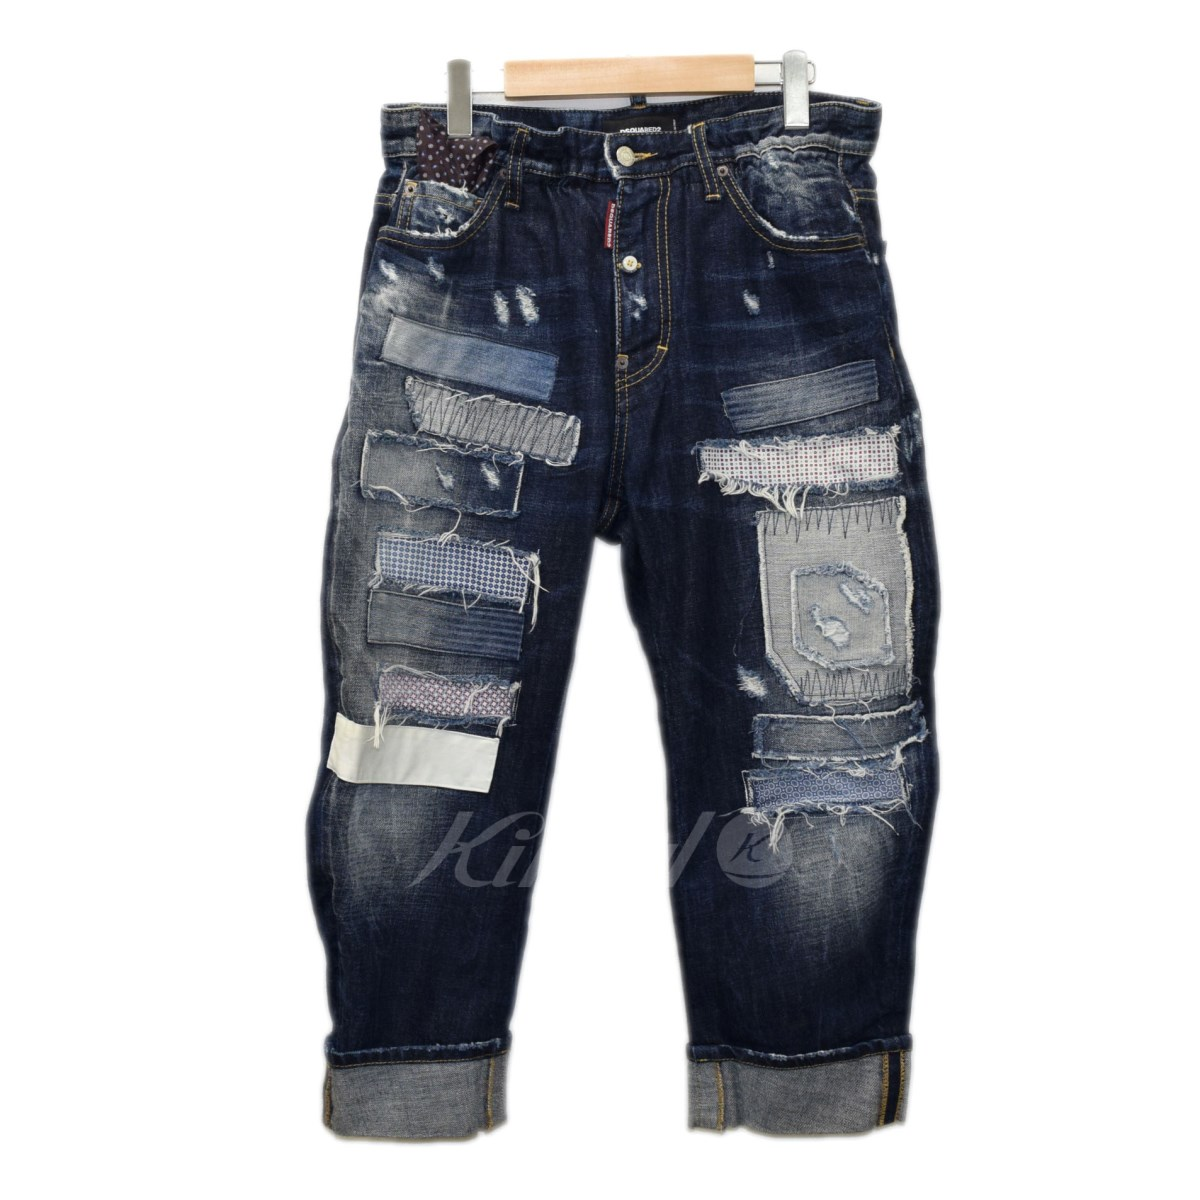 【中古】DSQUARED2 Big Deans Brother jean リメイクデニム 【送料無料】 【001134】 【KIND1641】